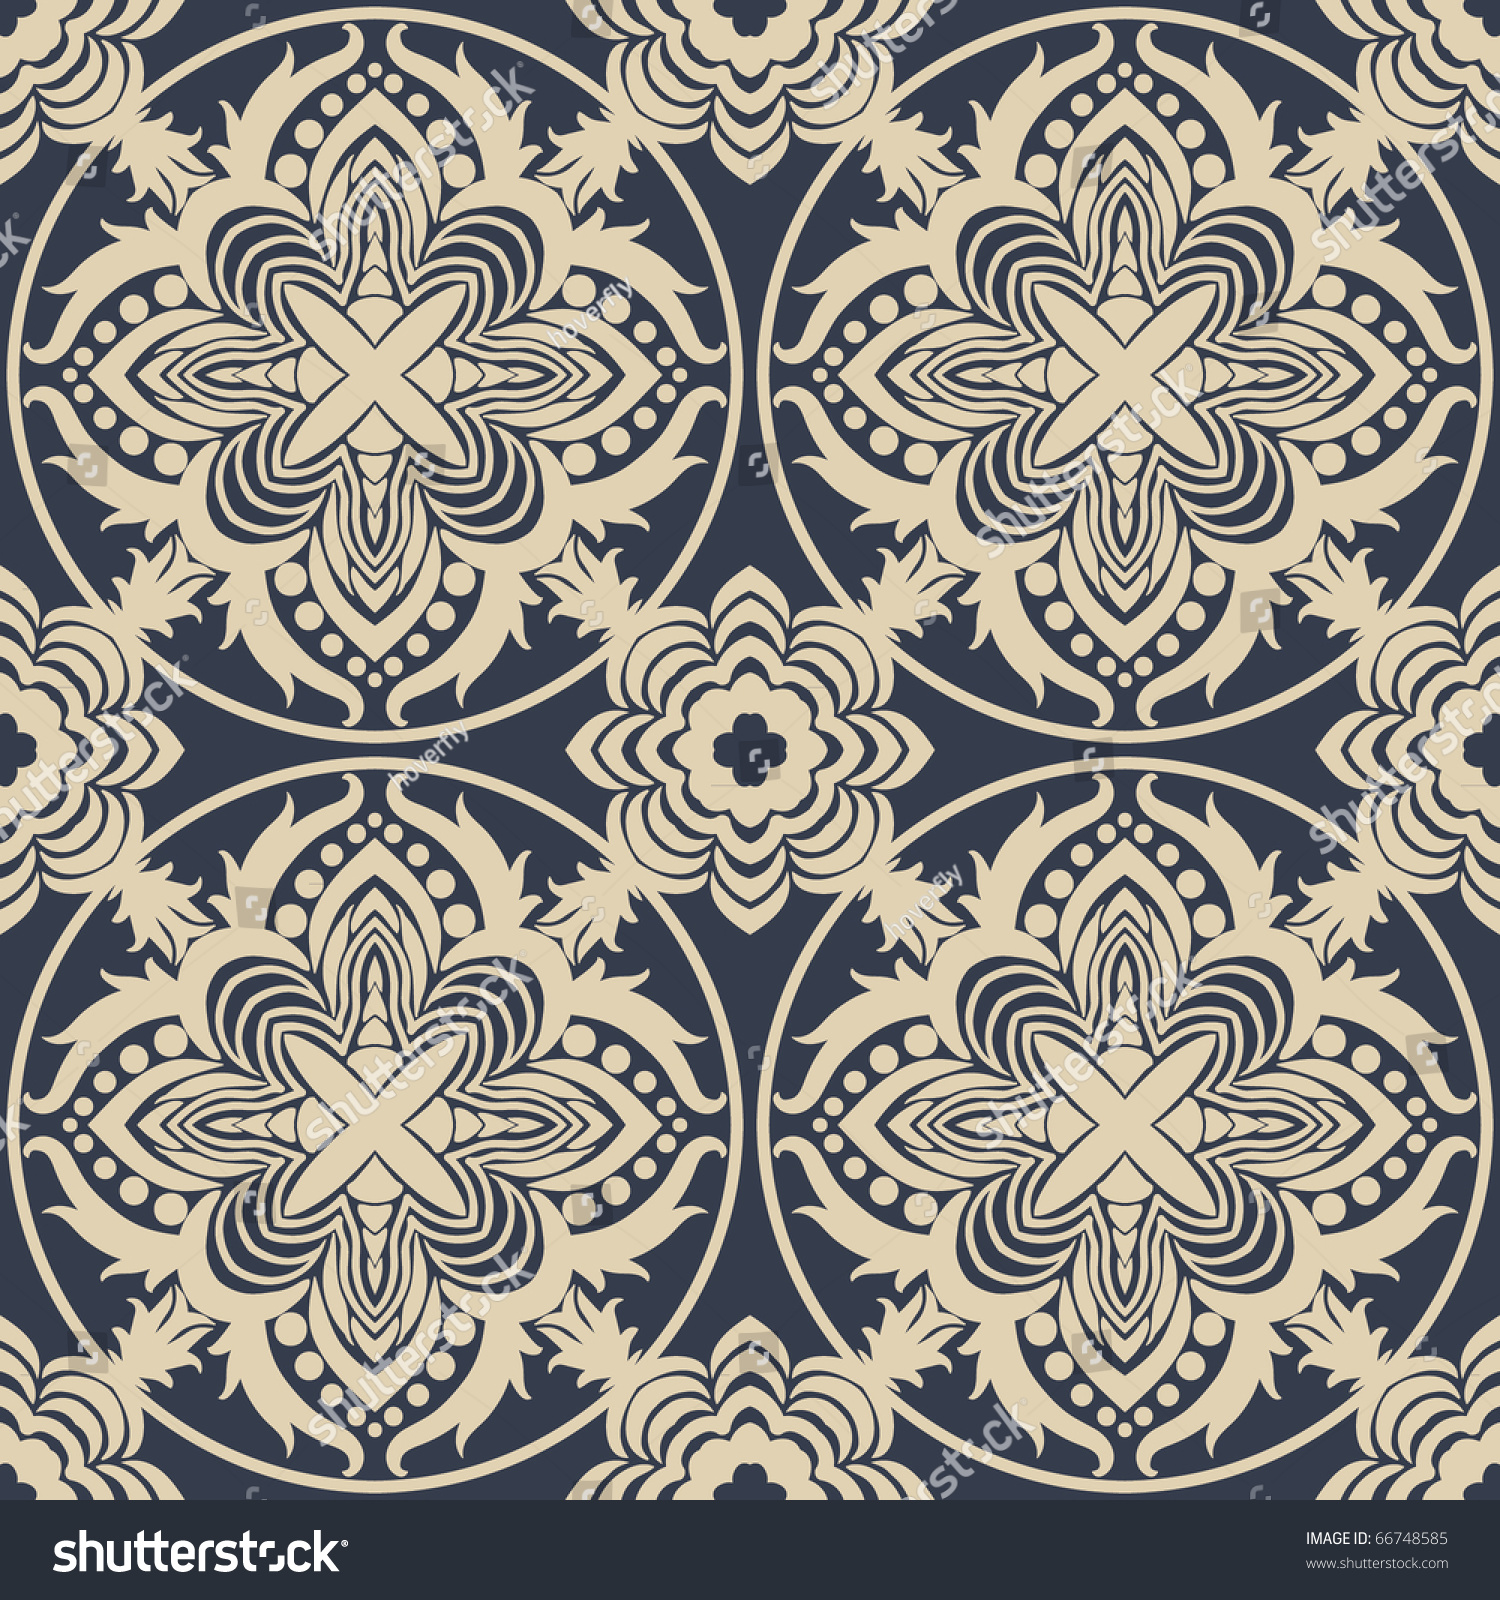 vintage repeating wallpaper - photo #6